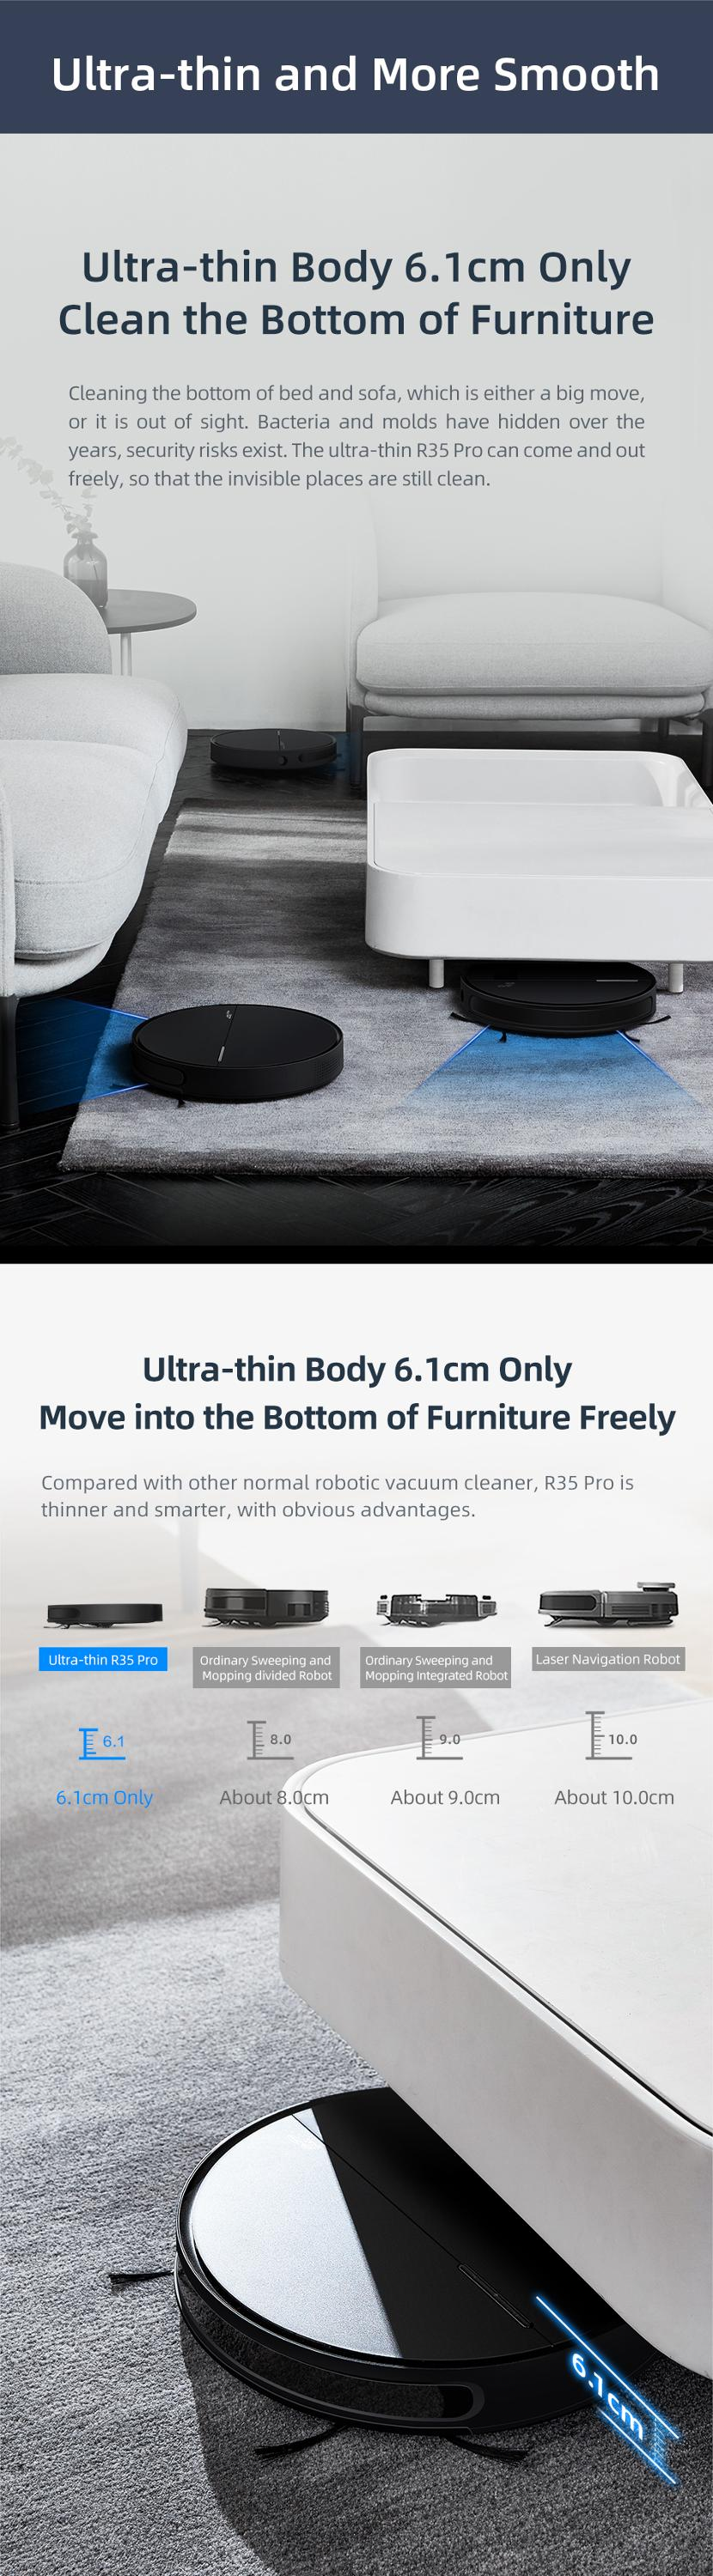 Puppyoo R35 Ultra-thin 6.1cm Only Intelligent Robot Vacuum Cleaner